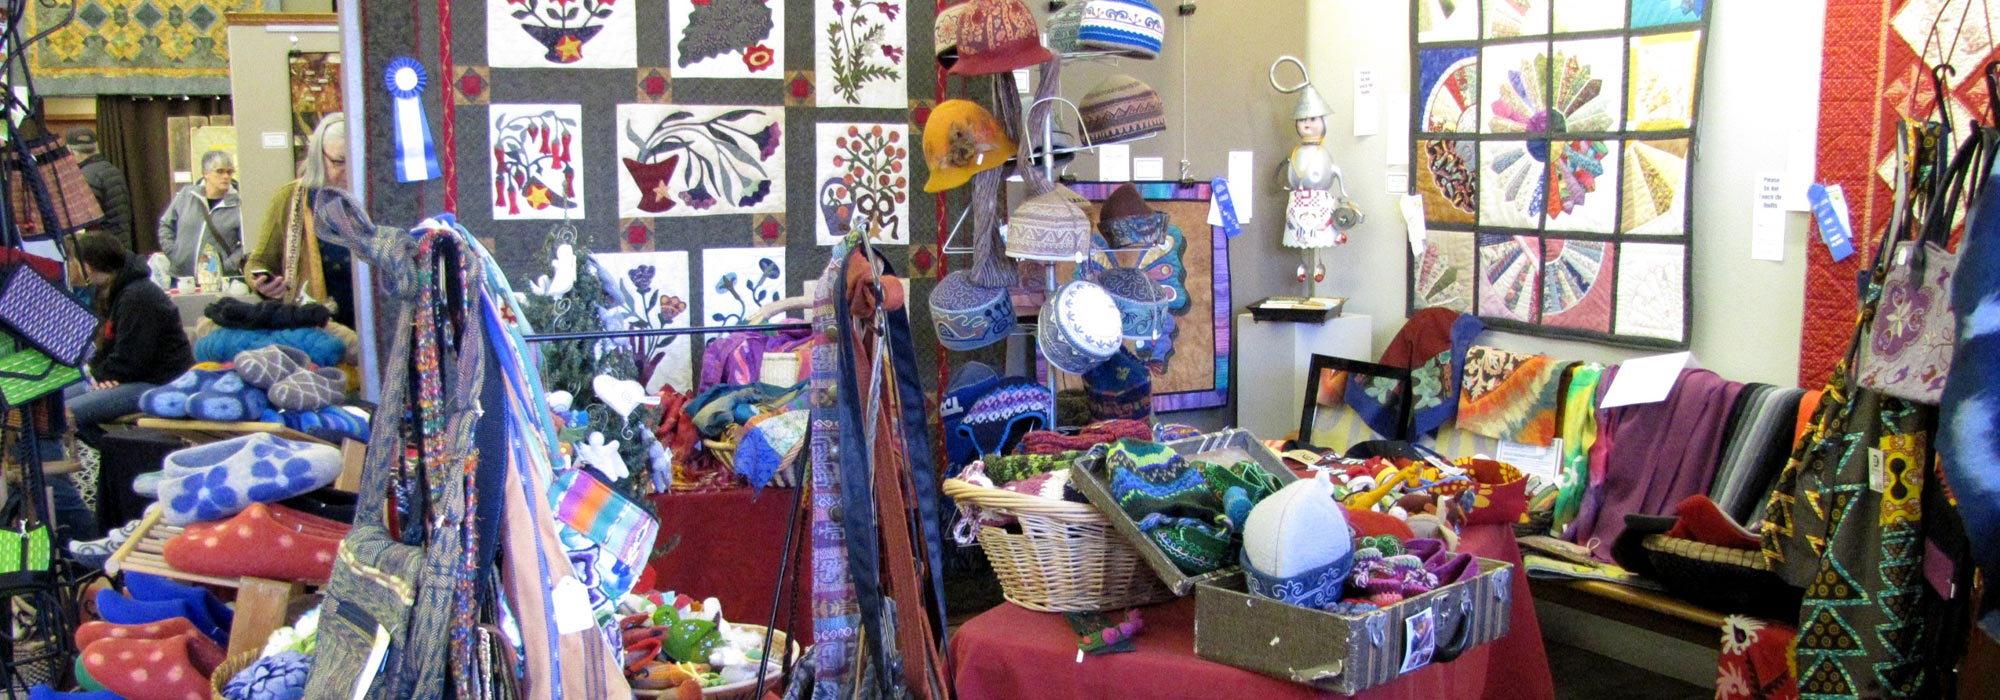 Fiber Arts Show & Workshops